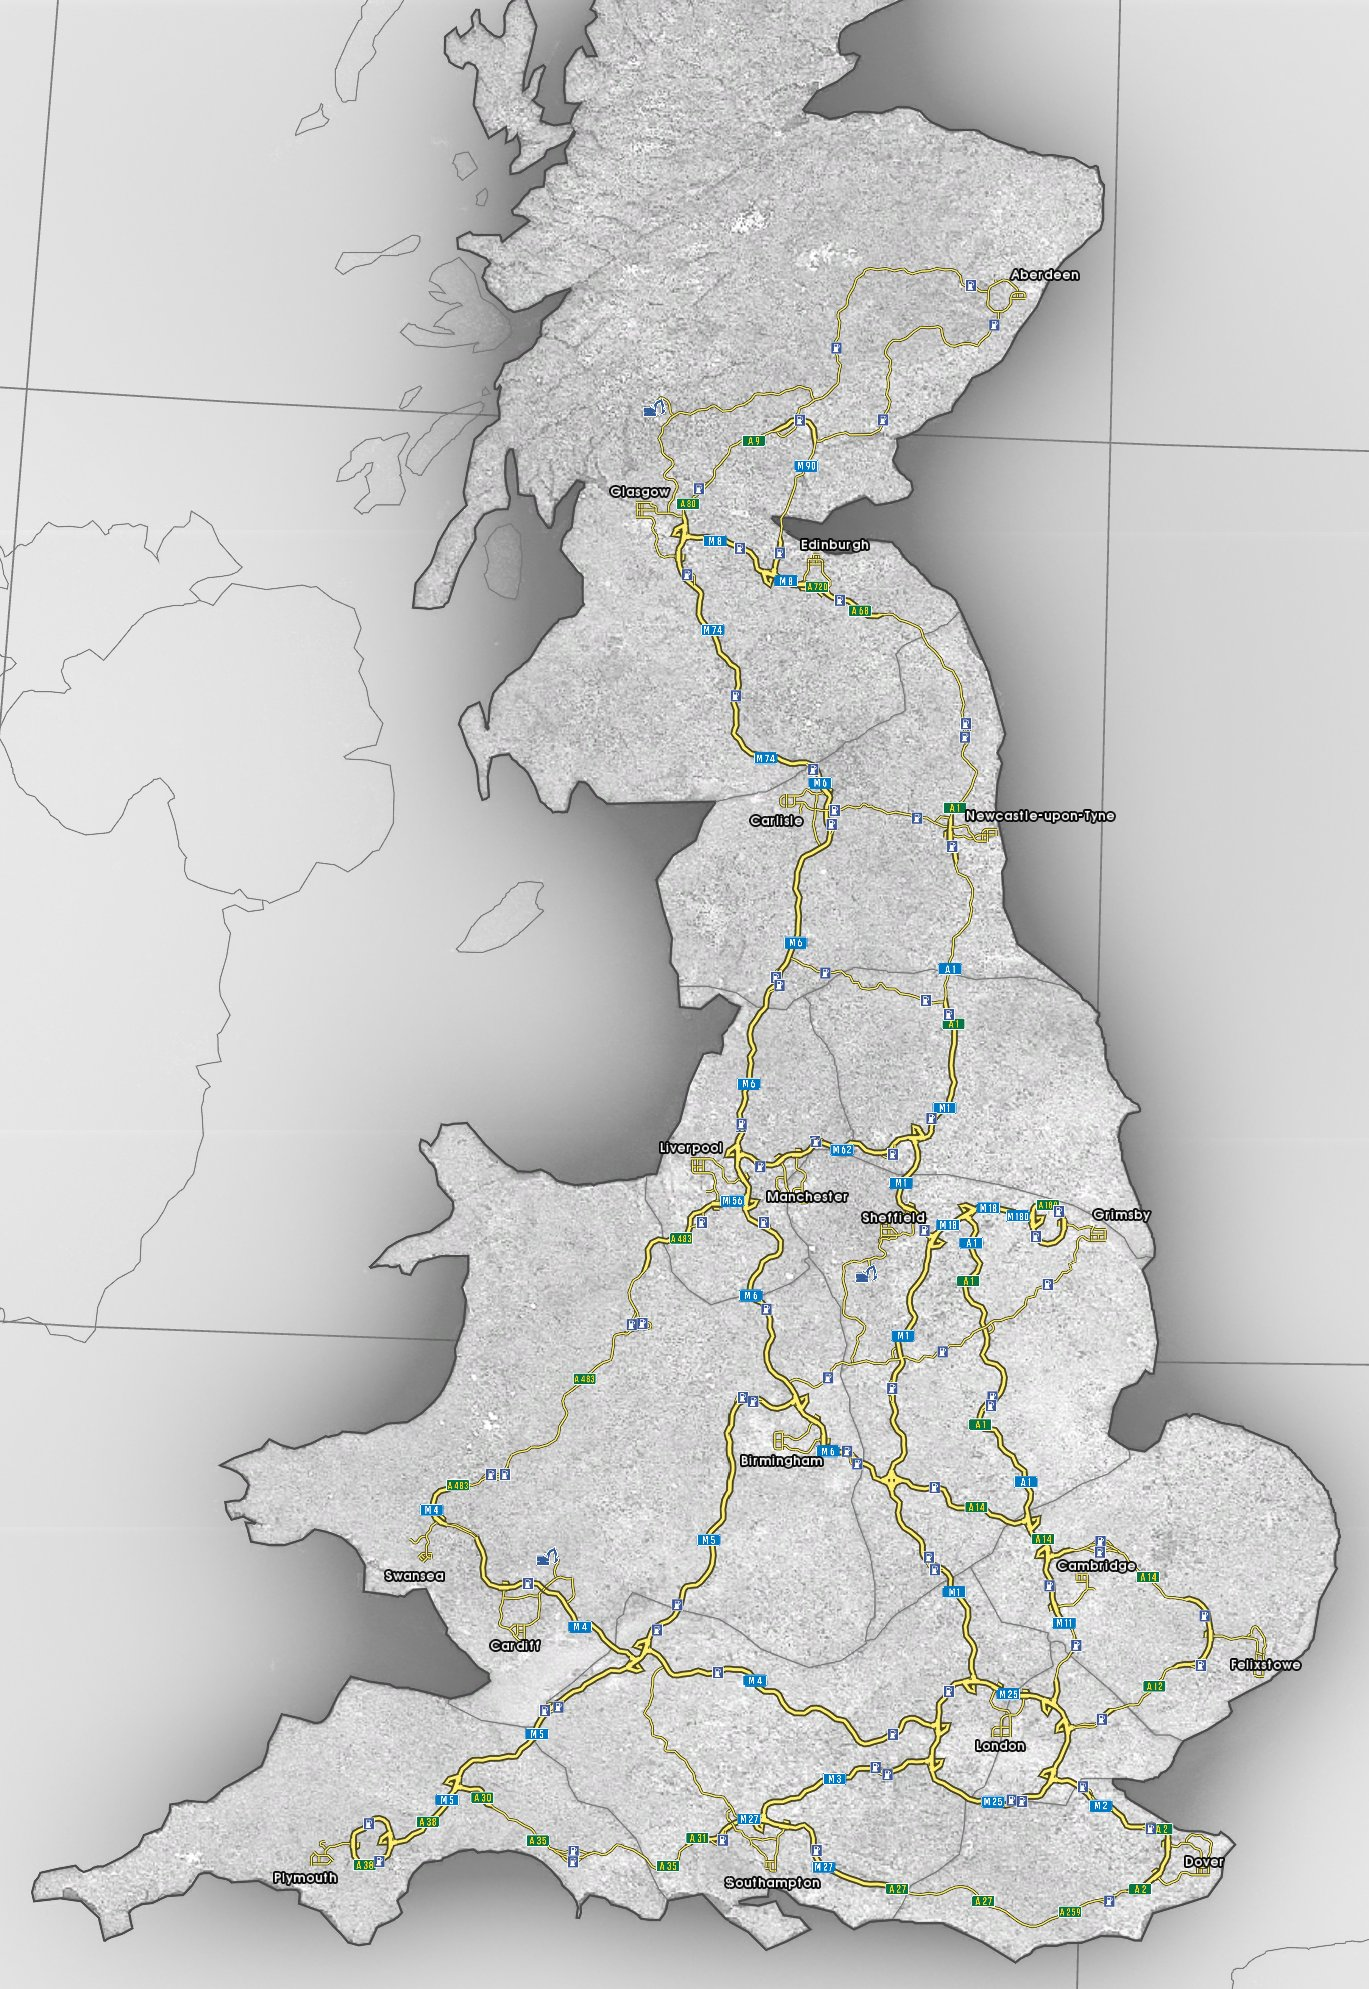 Truck Maps Uk UK Truck Simulator | Truck Simulator Wiki | FANDOM powered by Wikia